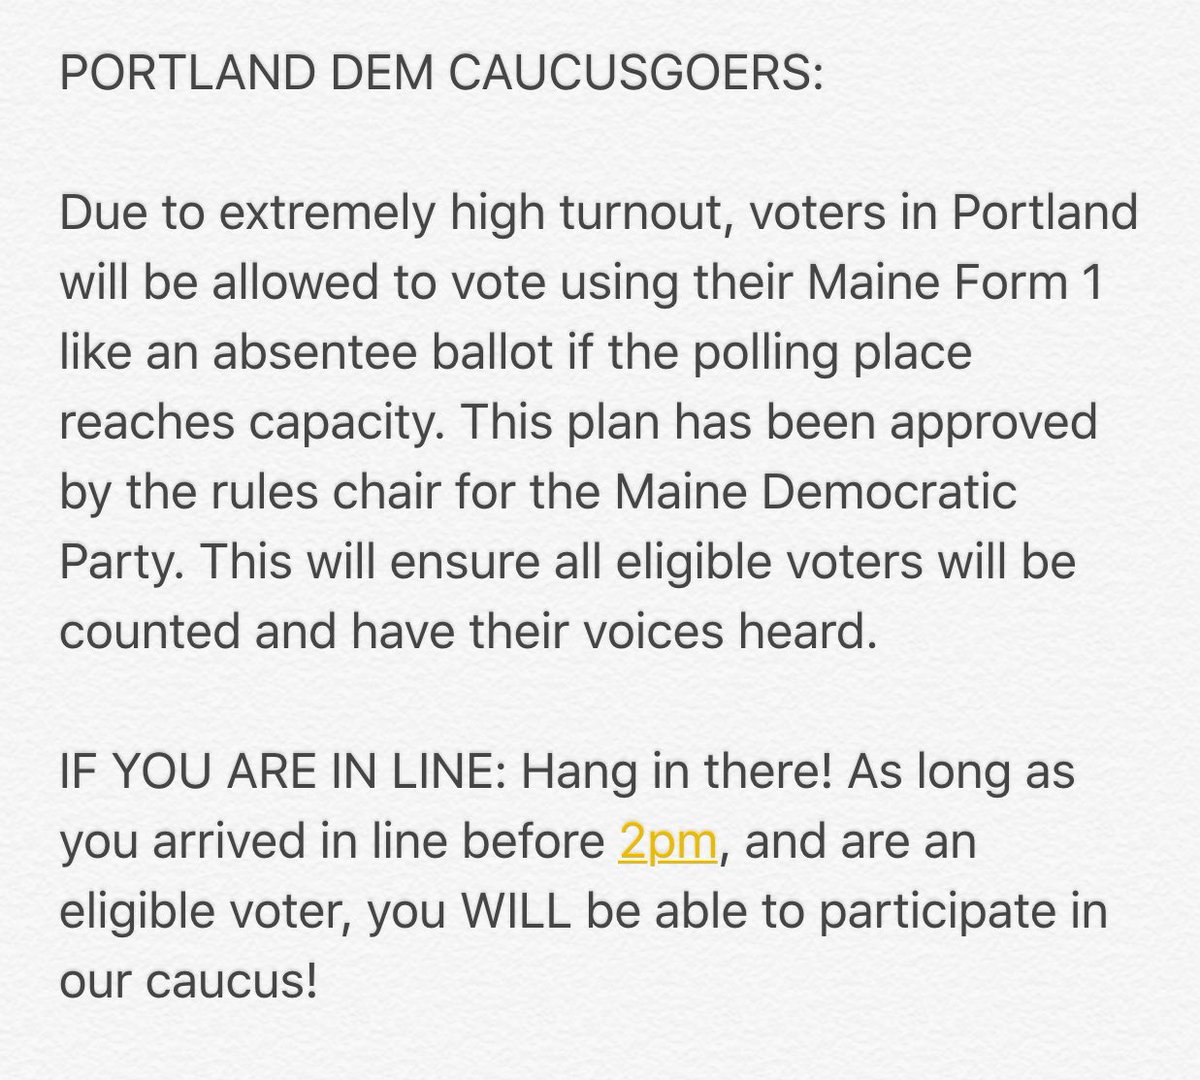 #mepolitics #PortlandMe Please spread the word. https://t.co/dNOSrGBMtv